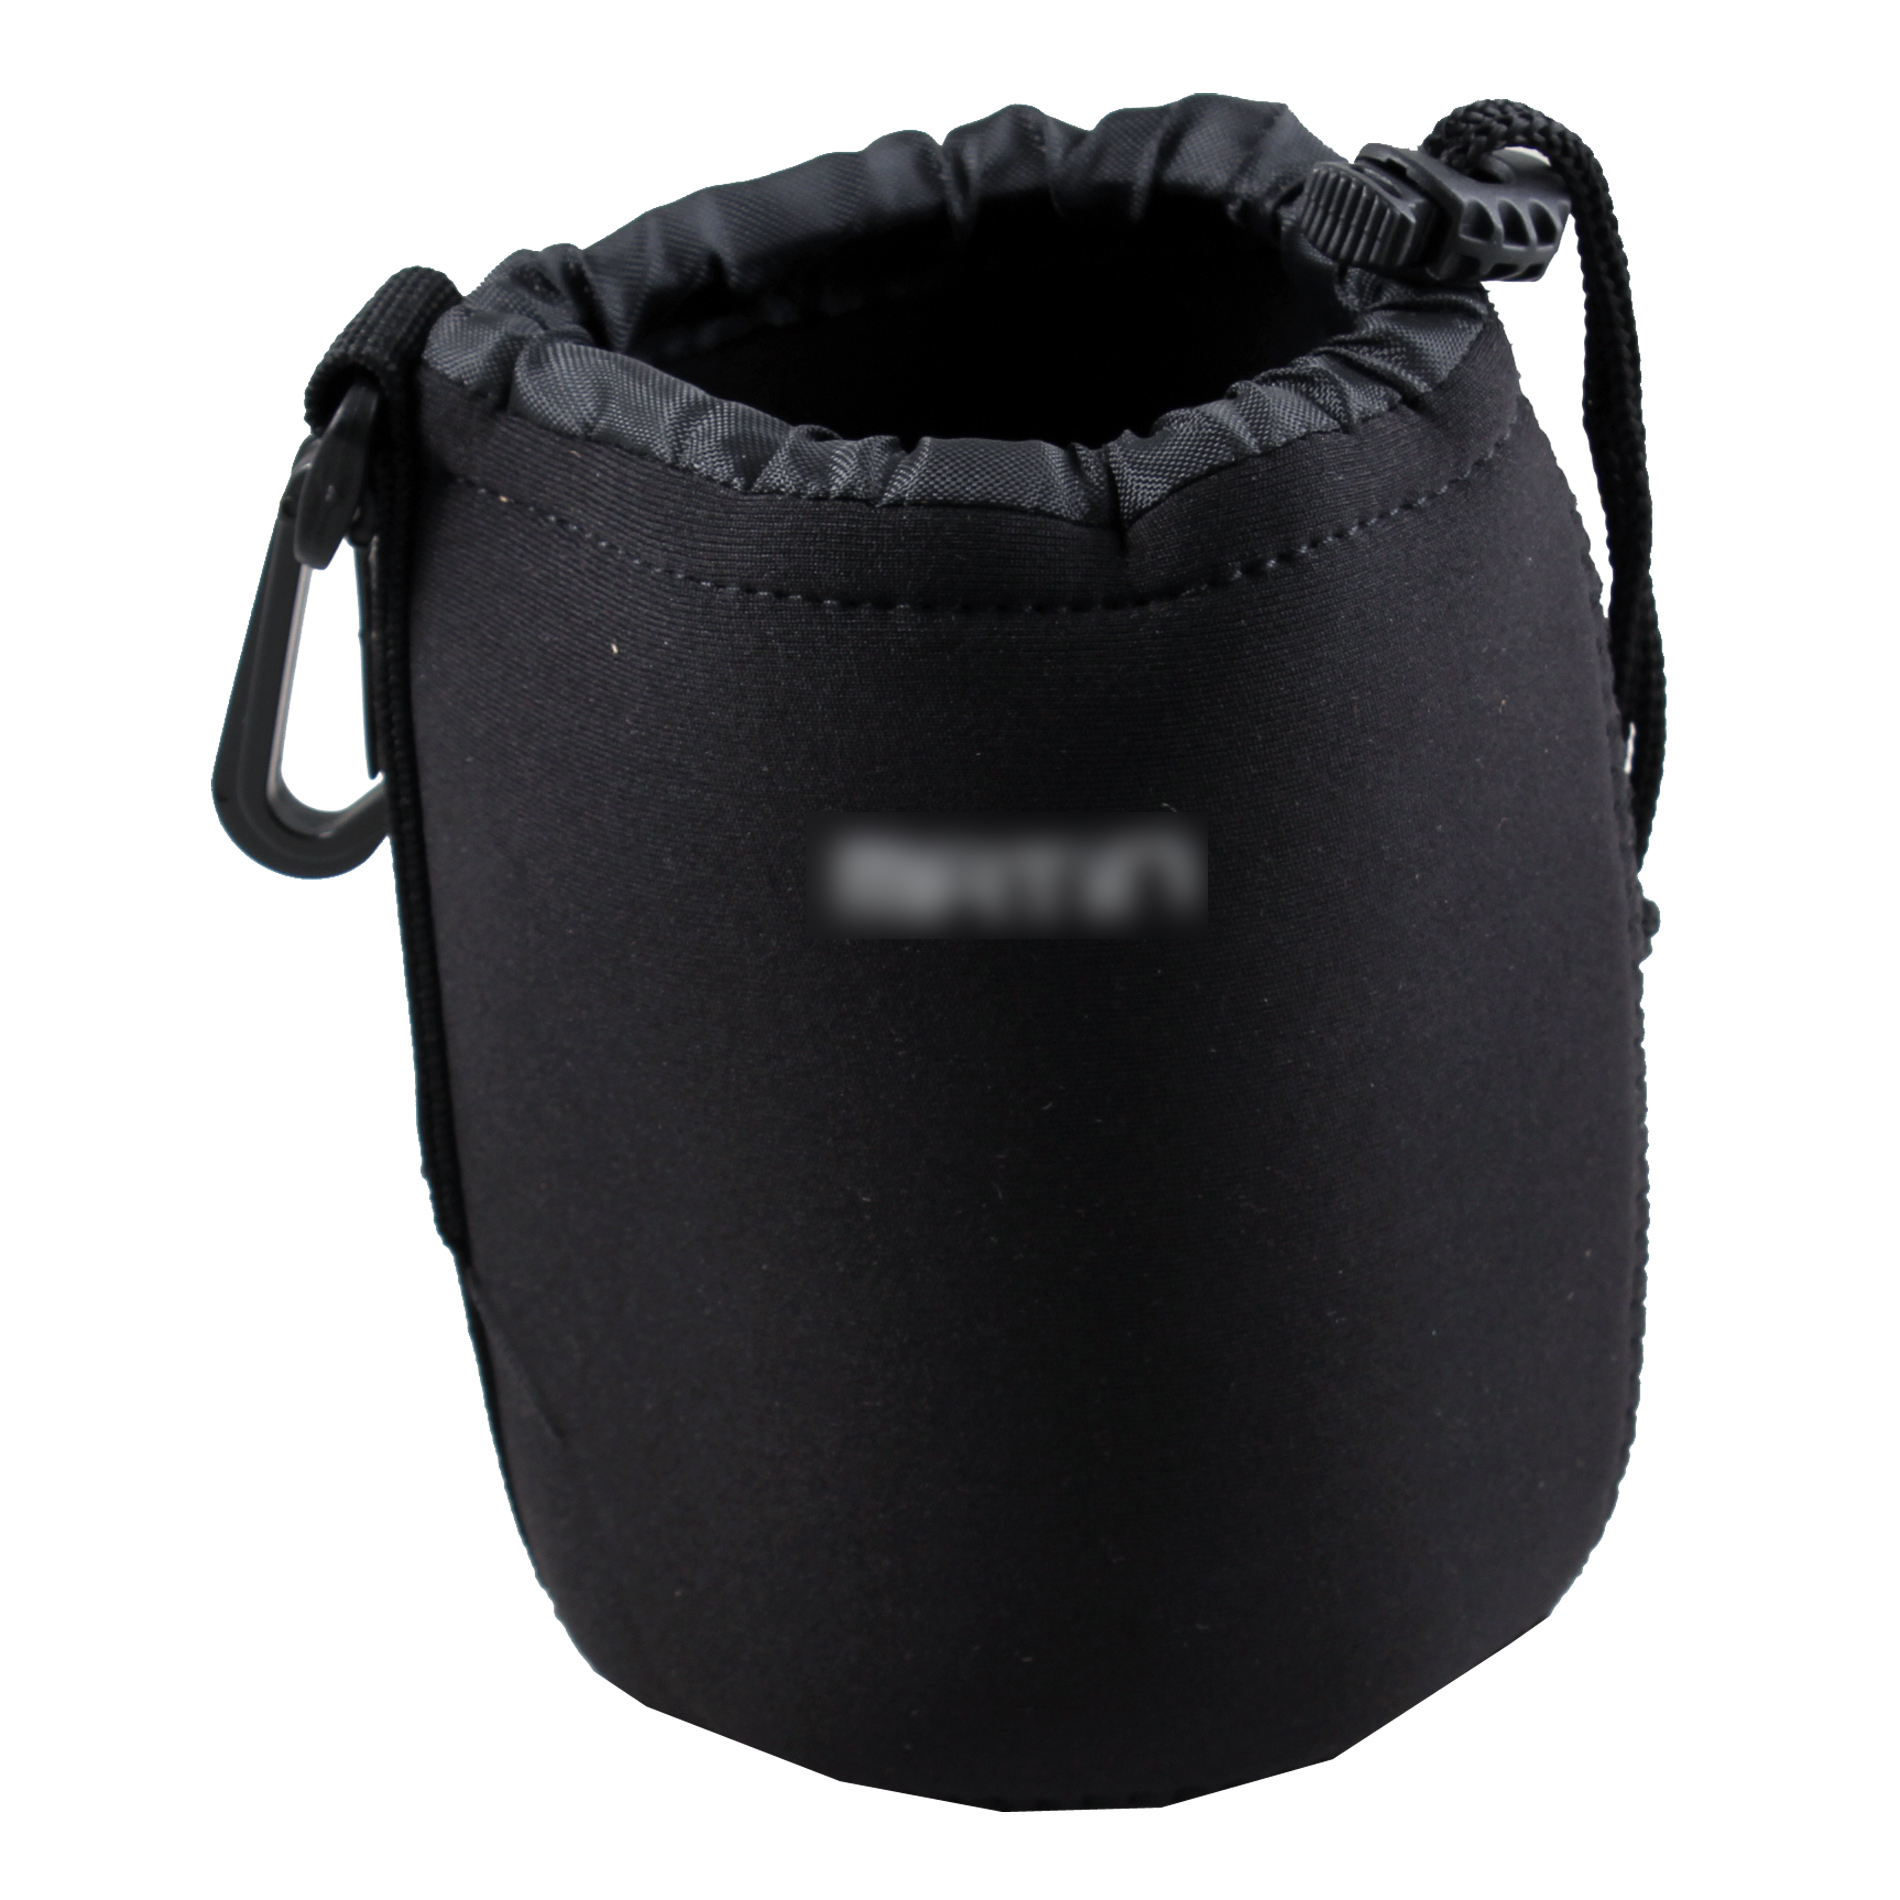 Neoprene Soft DSLR Camera Lens Pouch Case Bag to protect Lens (M)